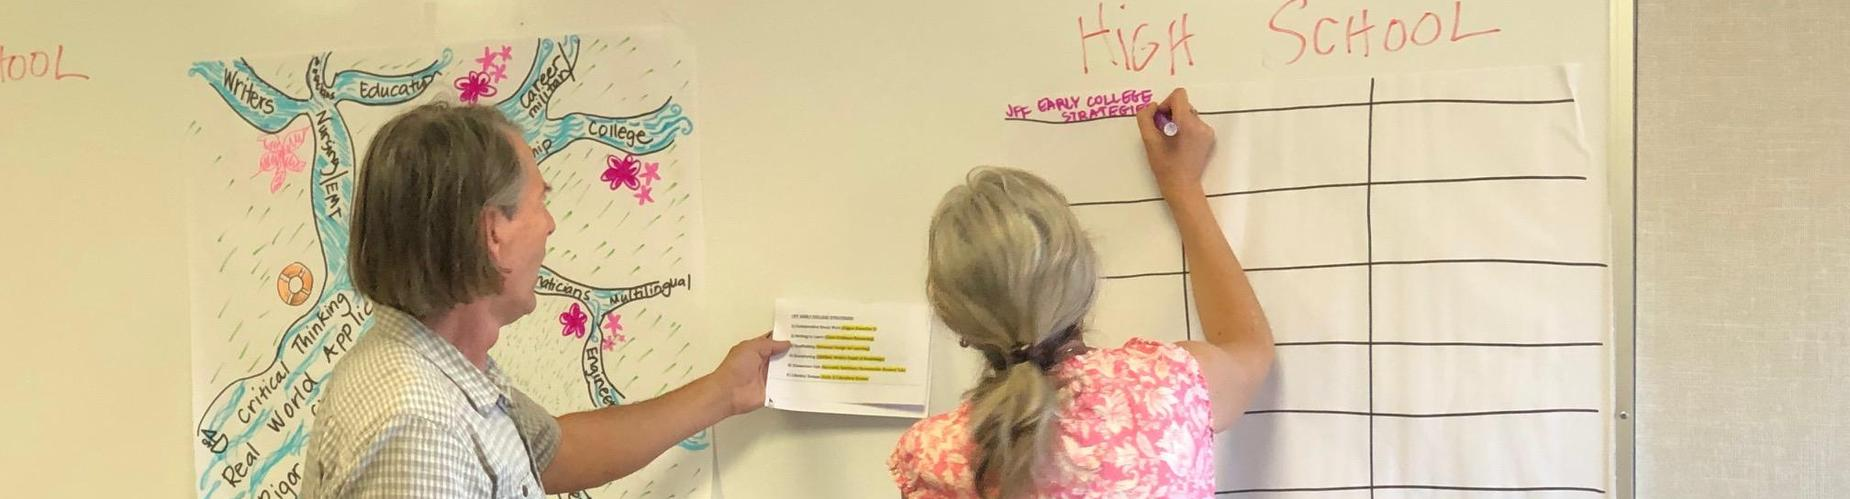 Two teachers work together to fill out a chart